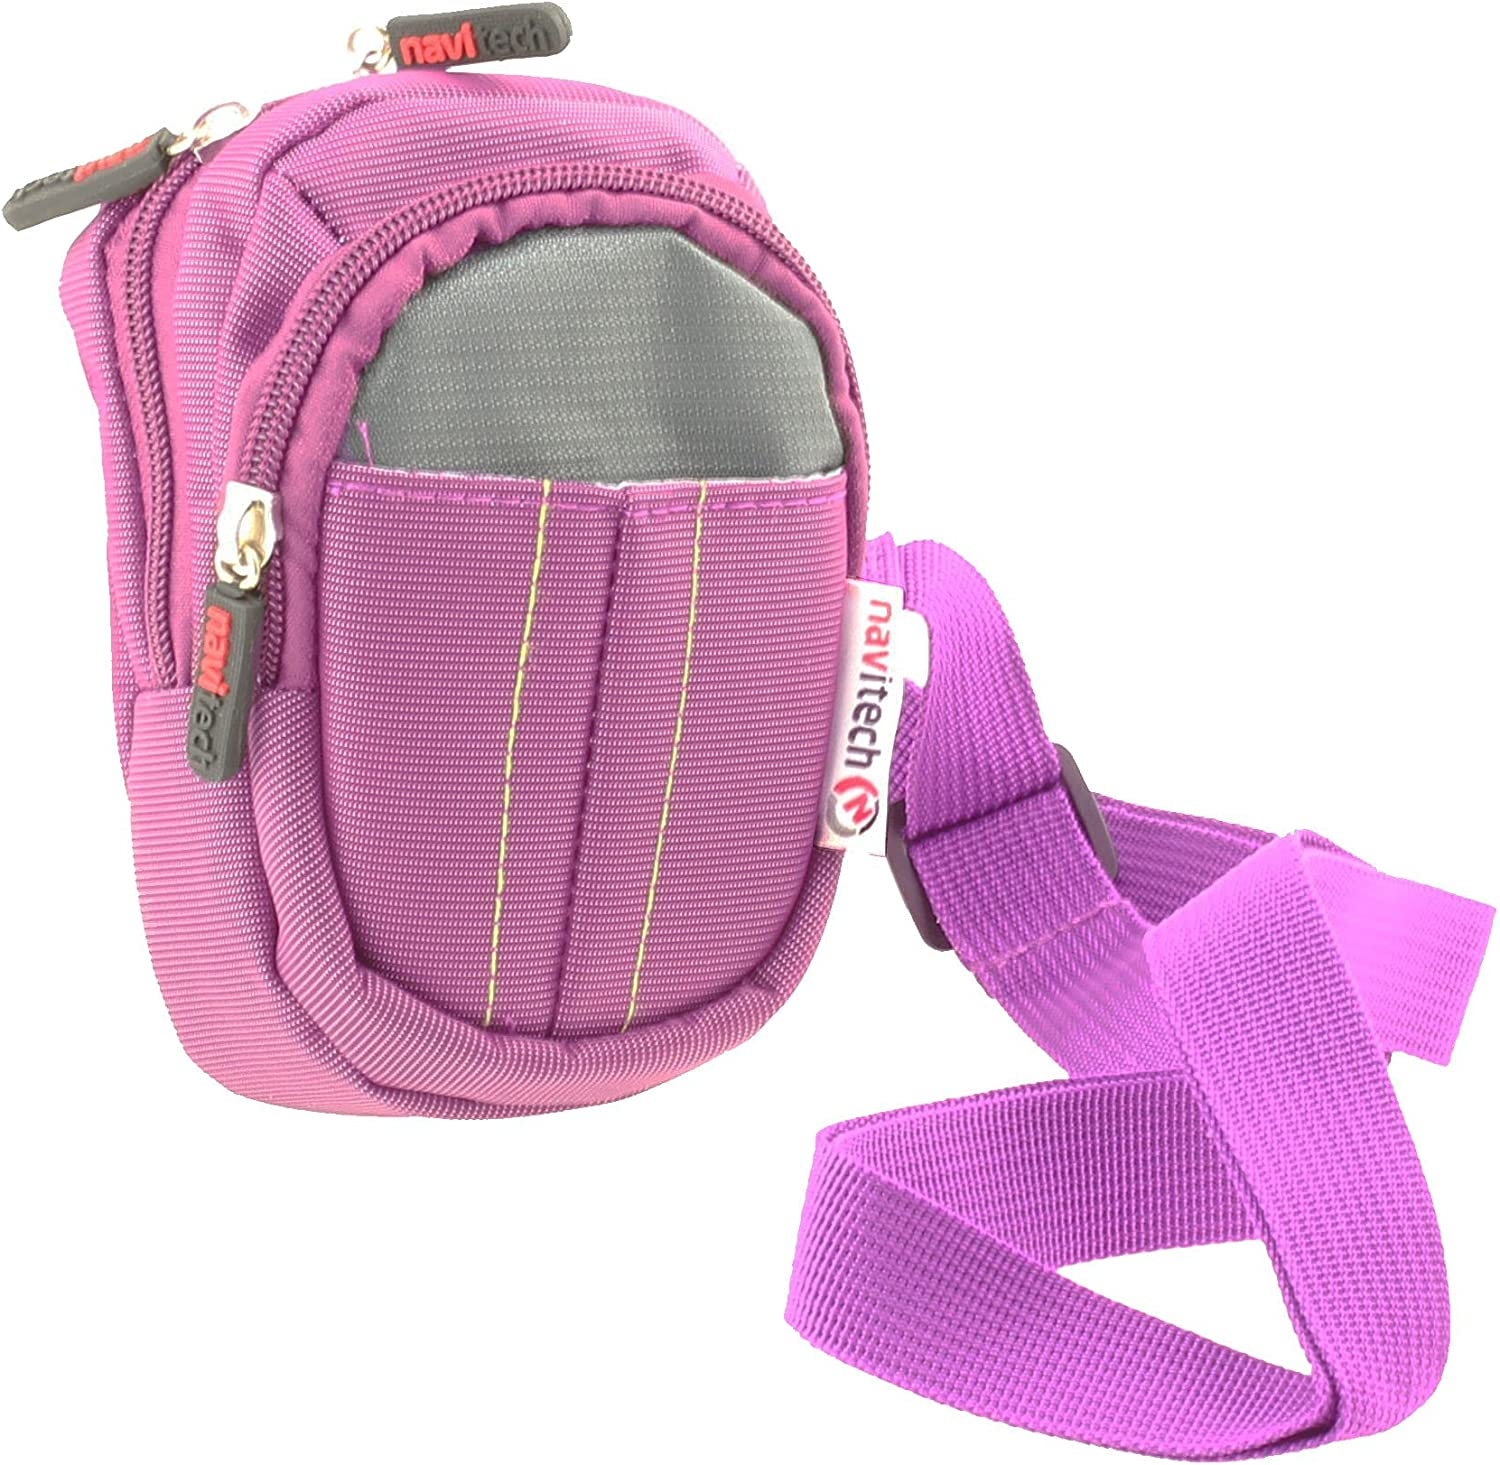 Low price Navitech Purple Case Compatible with AlcoSense Breatha The Max 52% OFF Excel